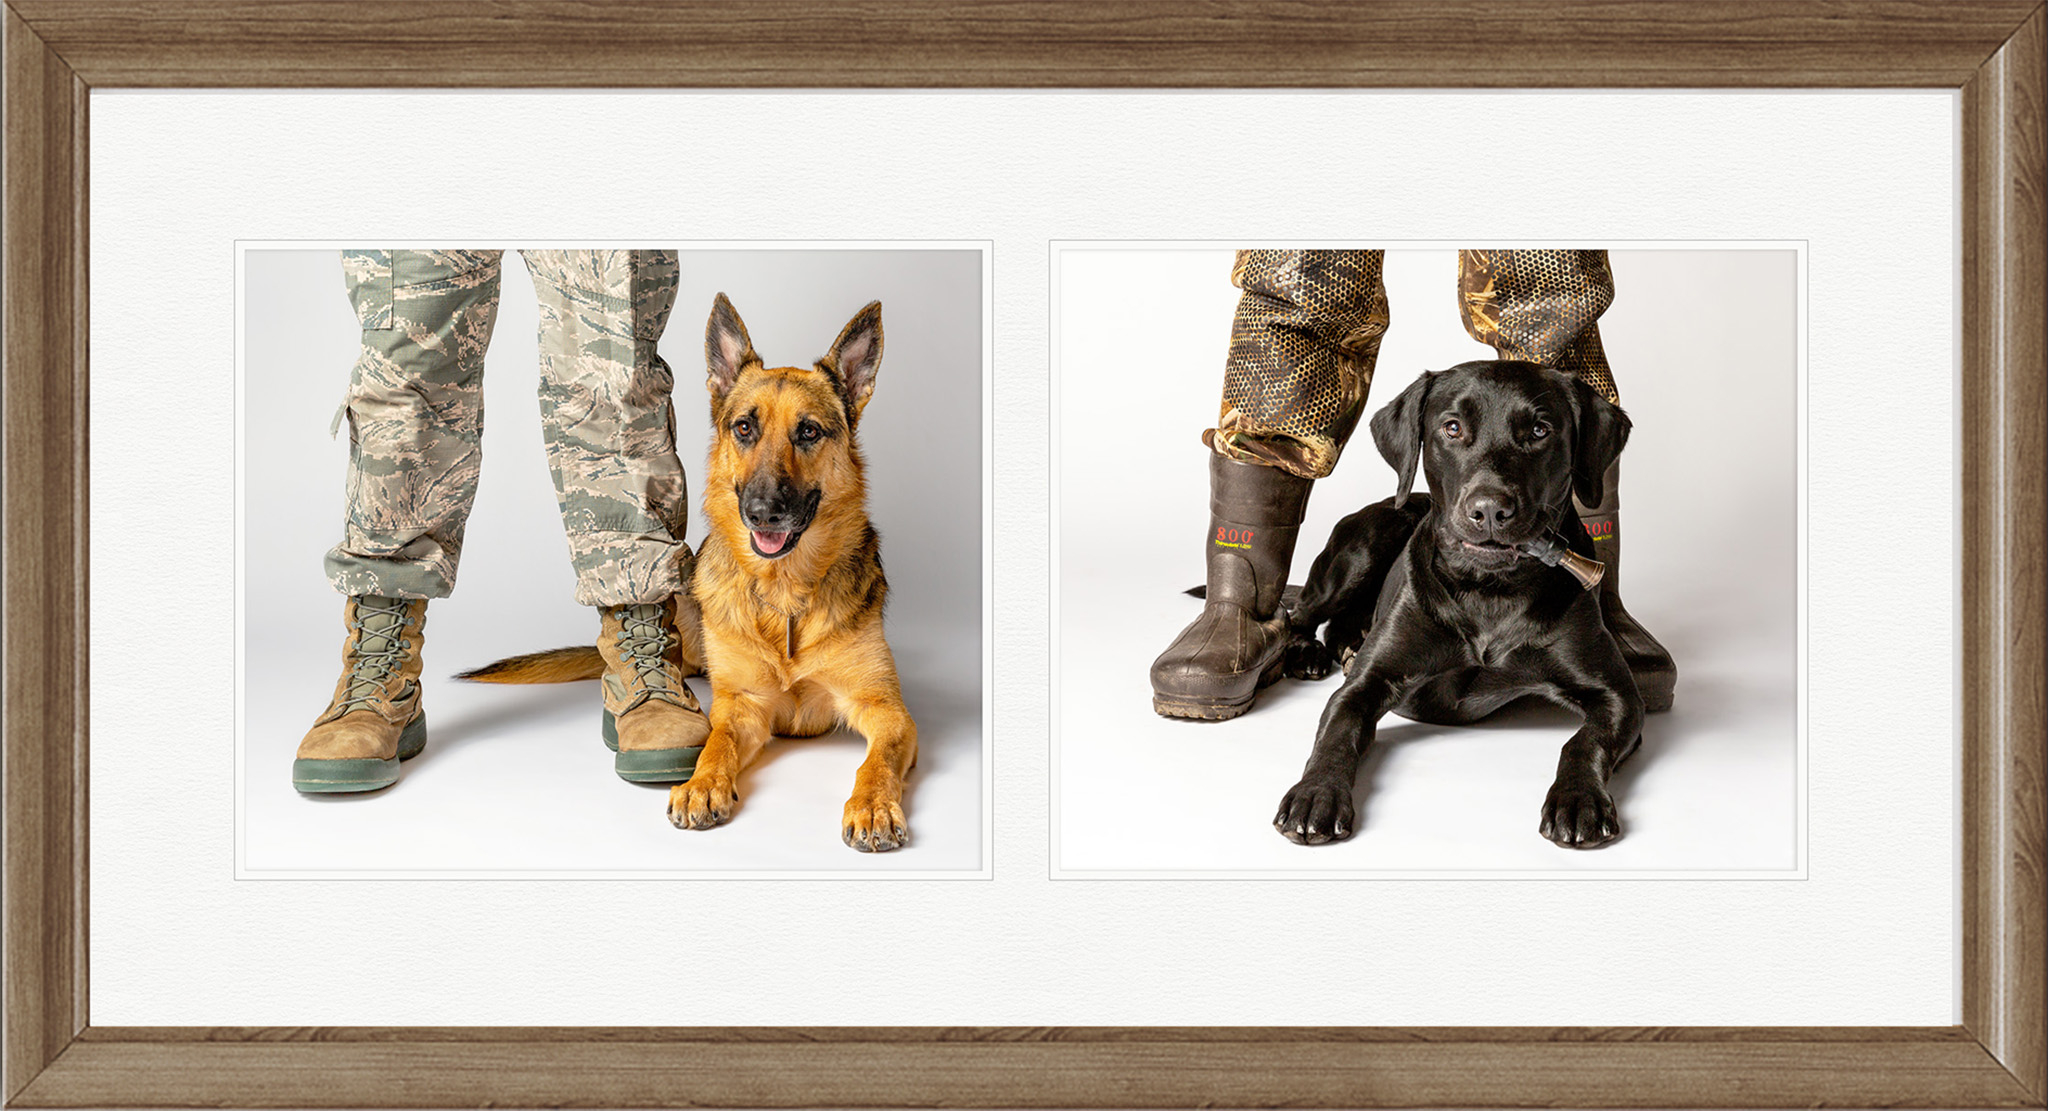 Pawsitivity 10x20 two image framed print